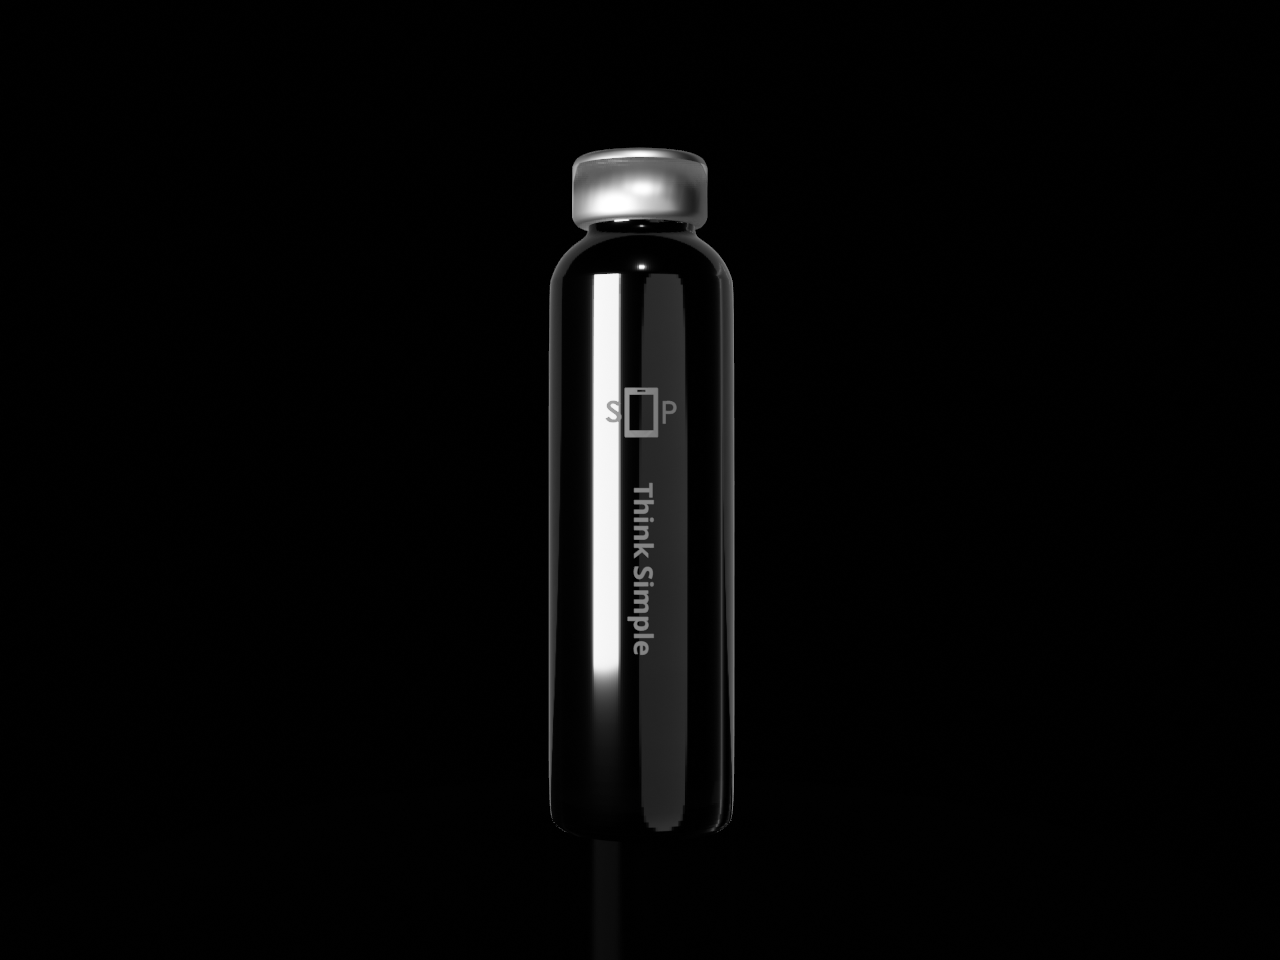 SimpleBottle Limited Edition